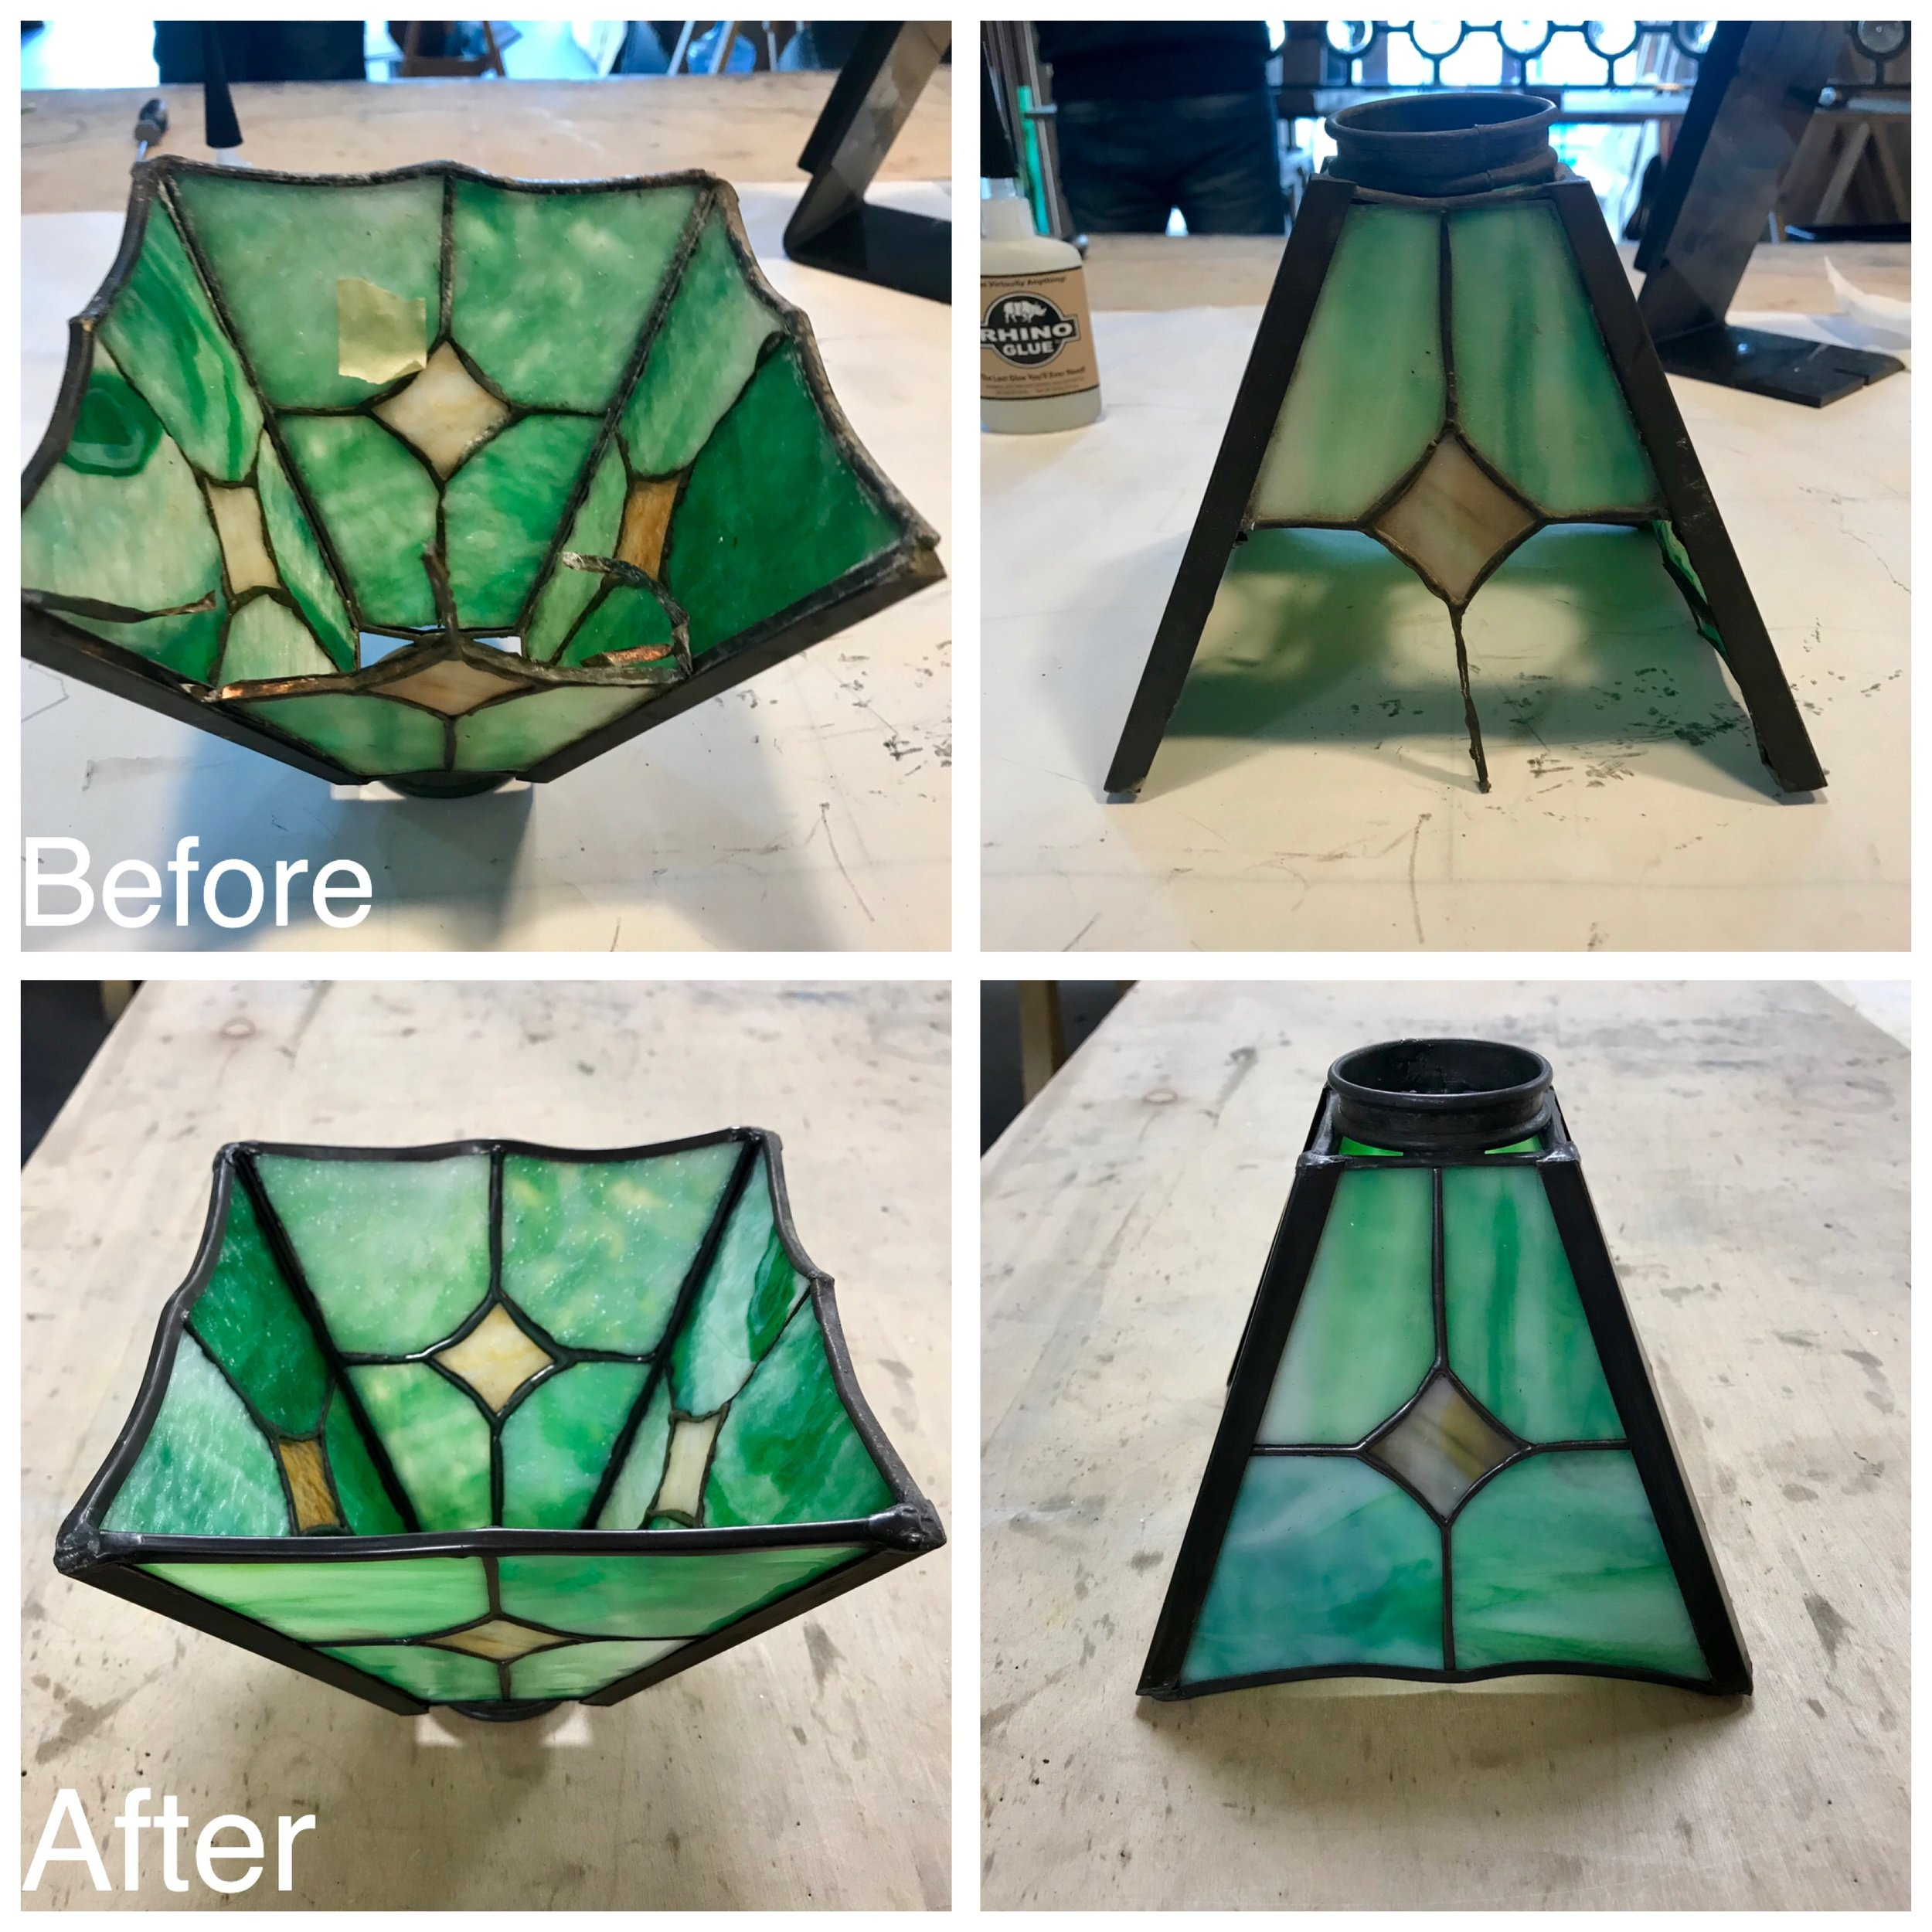 leaded glass stained glass art glass bay area custom design legacy glass studios repair restoration lampshade green antique copper foil textured broken frame old metal.JPG